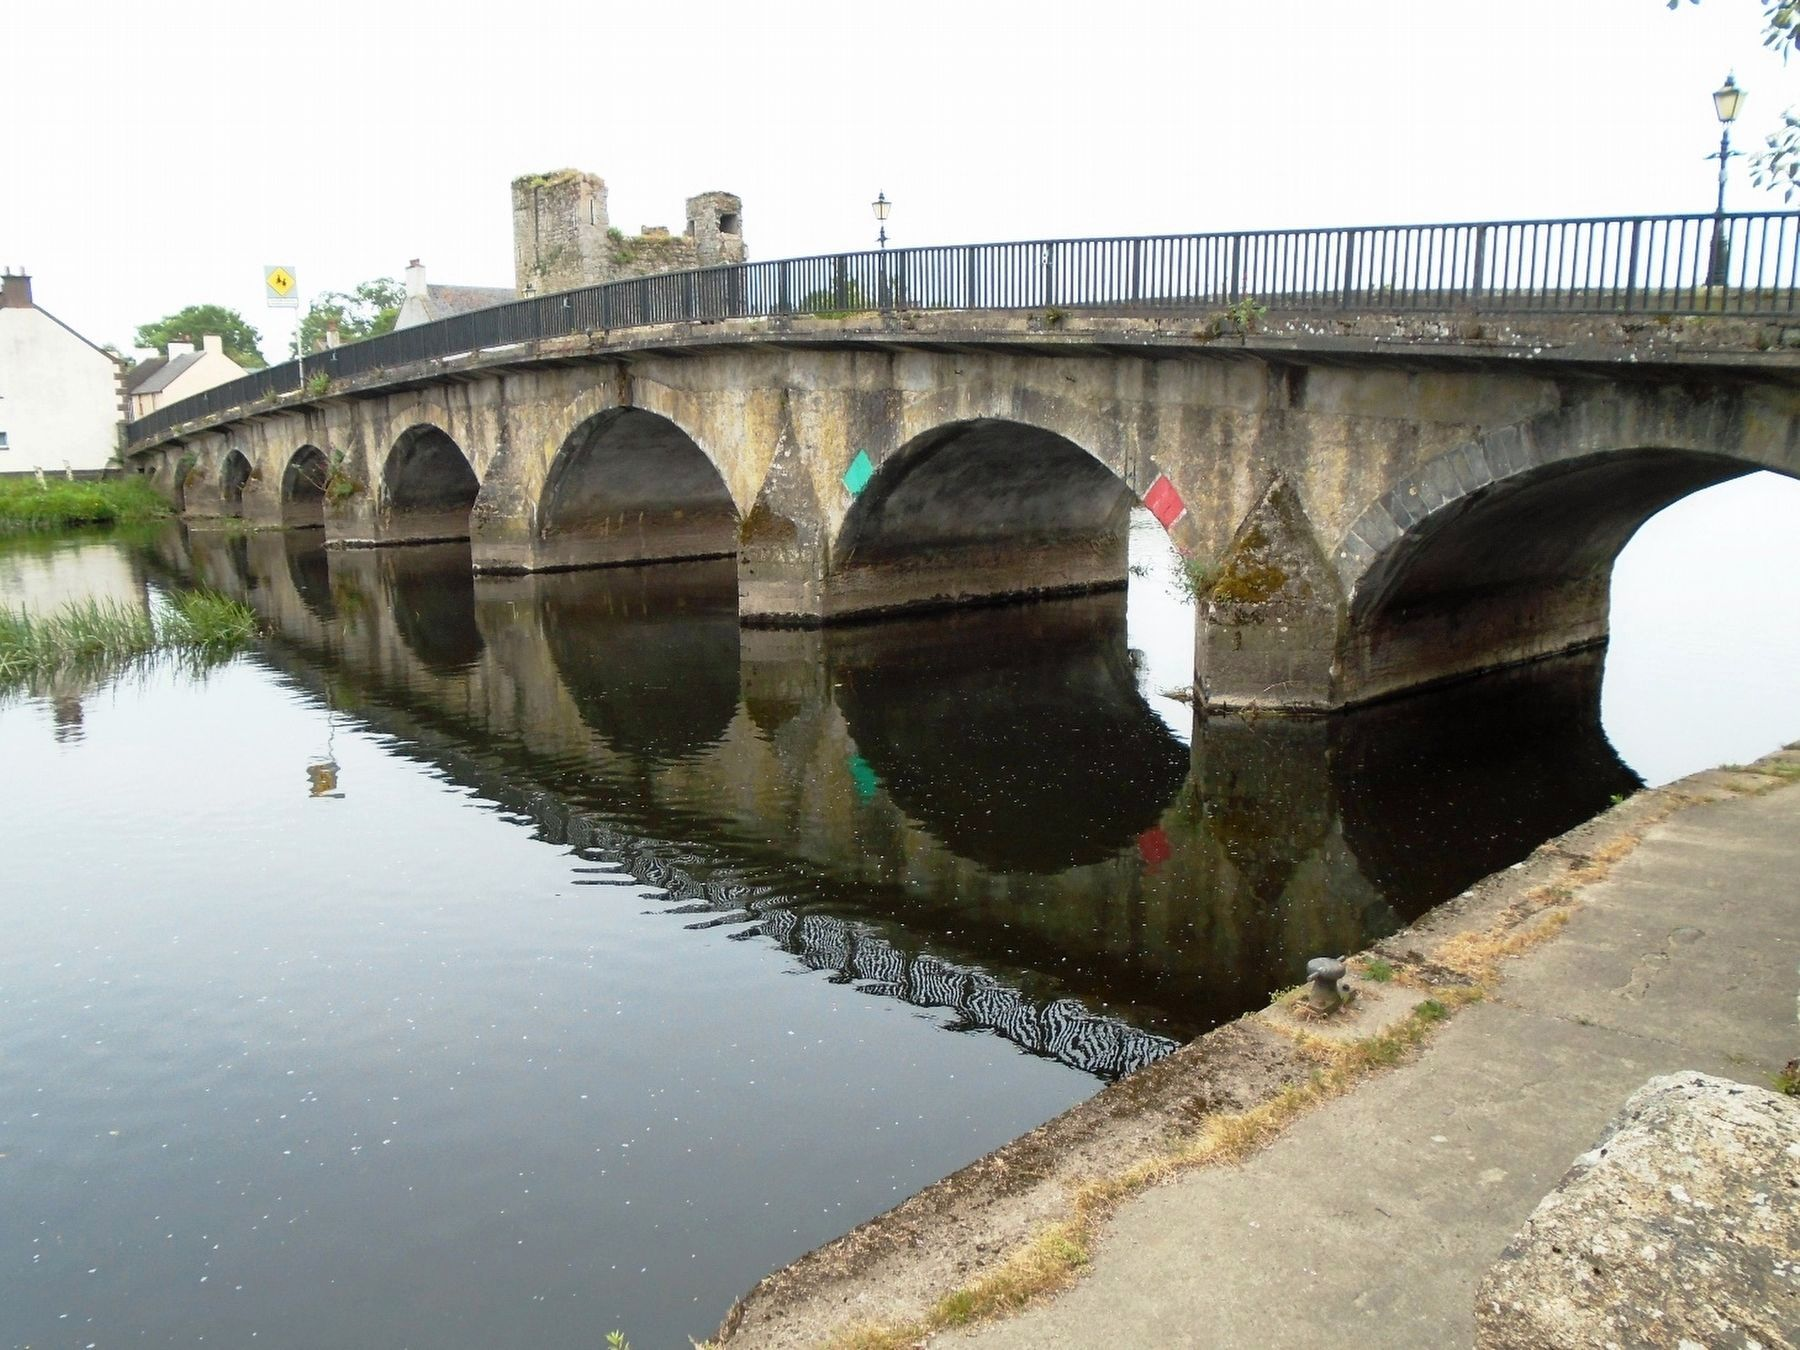 Bridge Over the River Barrow, Leighlinbridge image. Click for full size.